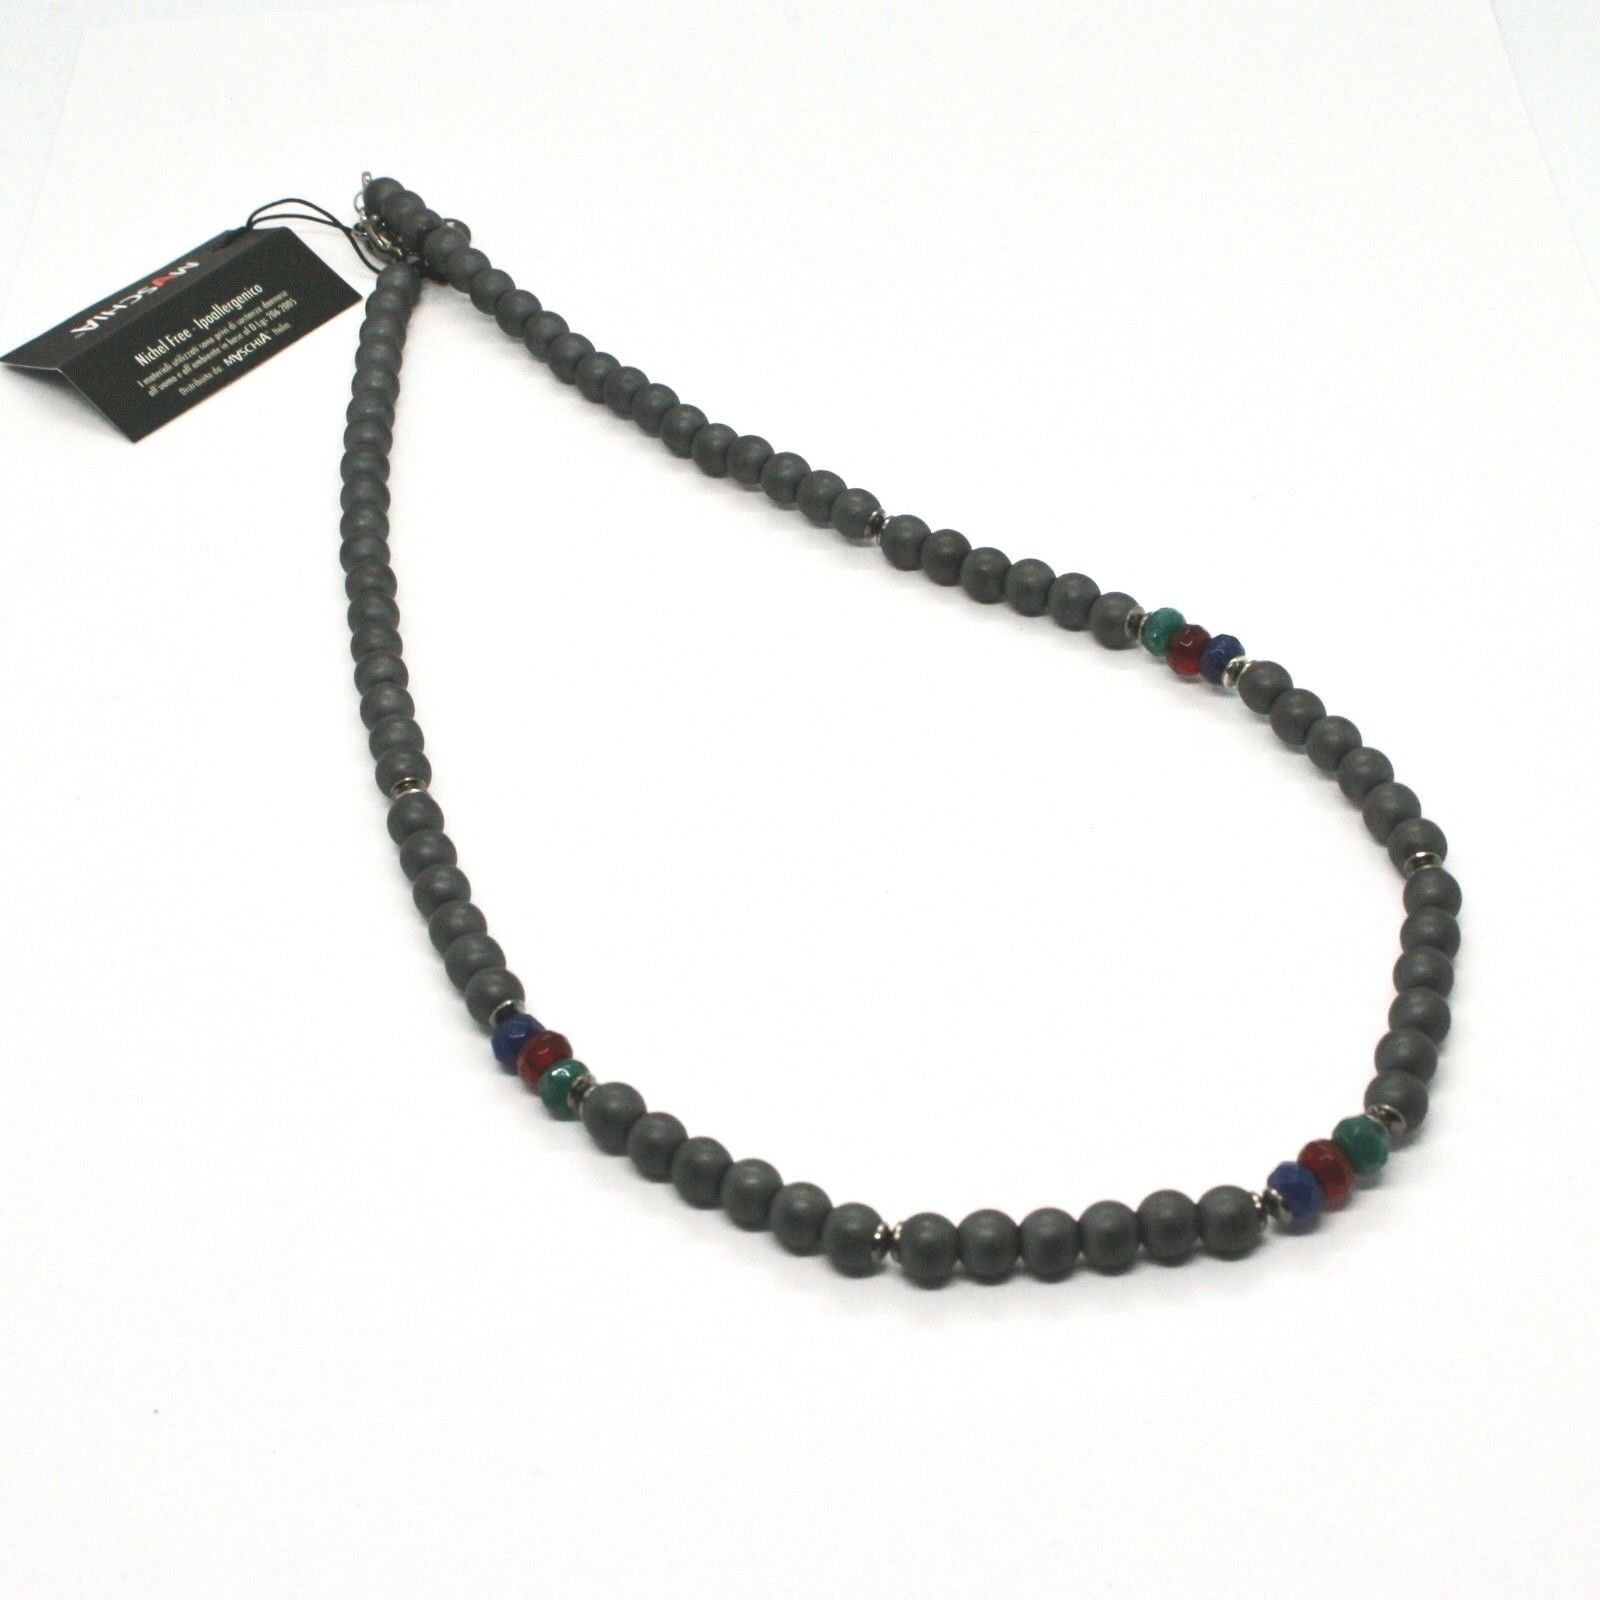 Silver Necklace 925 Burnished with Hematite and Agate Made in Italy by Maschia